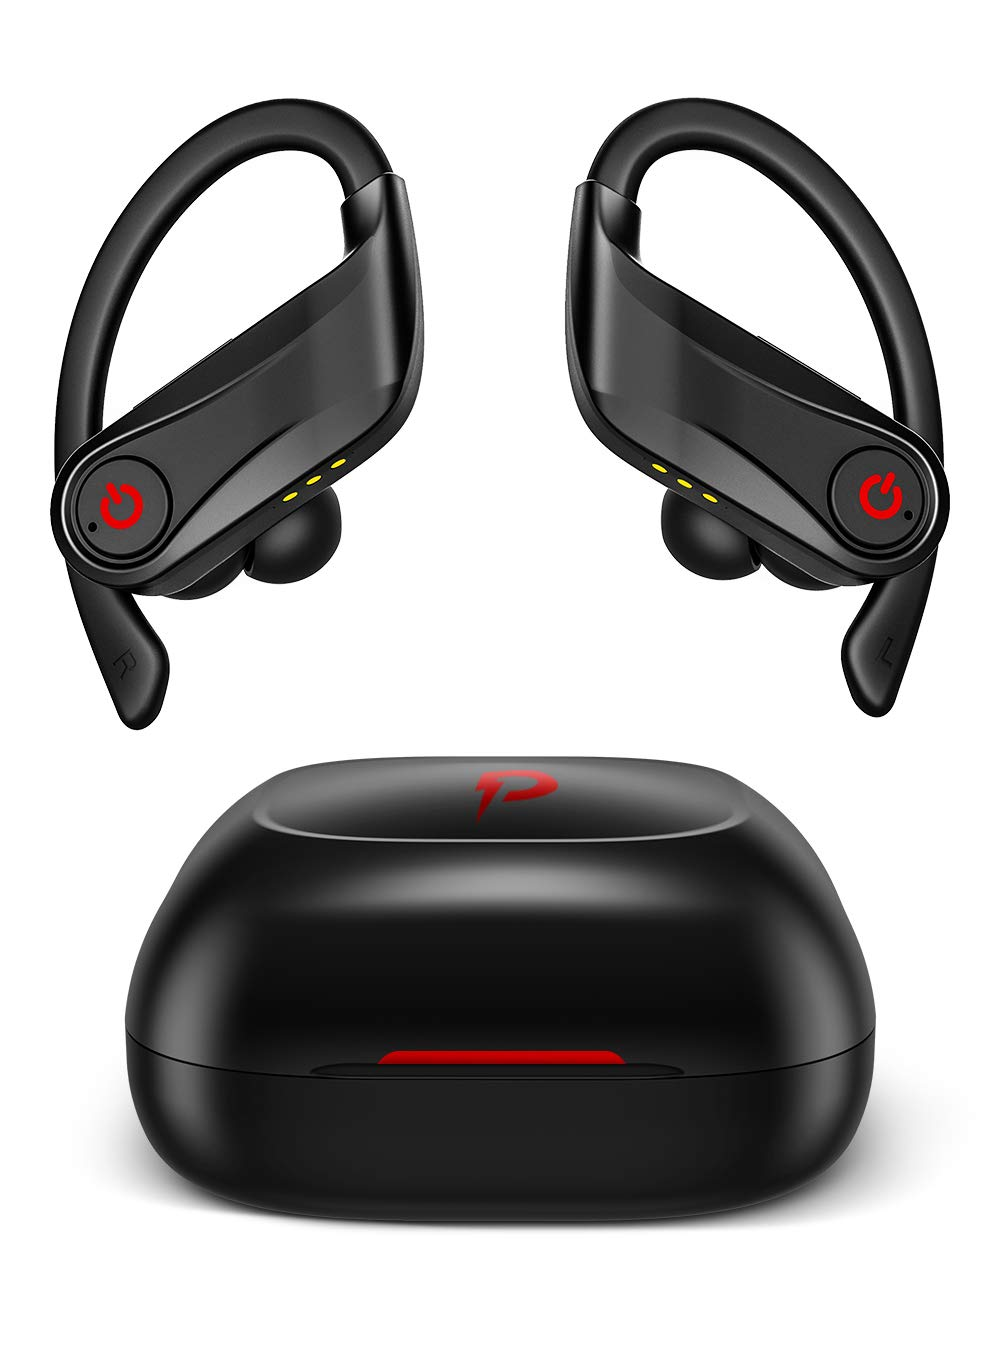 Wireless Earbuds,XXXAUDIO Bluetooth 5.0 True Wireless Earbuds,3D Stereo Sound 30H Playtime in-Ear Built-in Mic Headphones,Premium Sound with Deep Bass for Sport,Work Outs